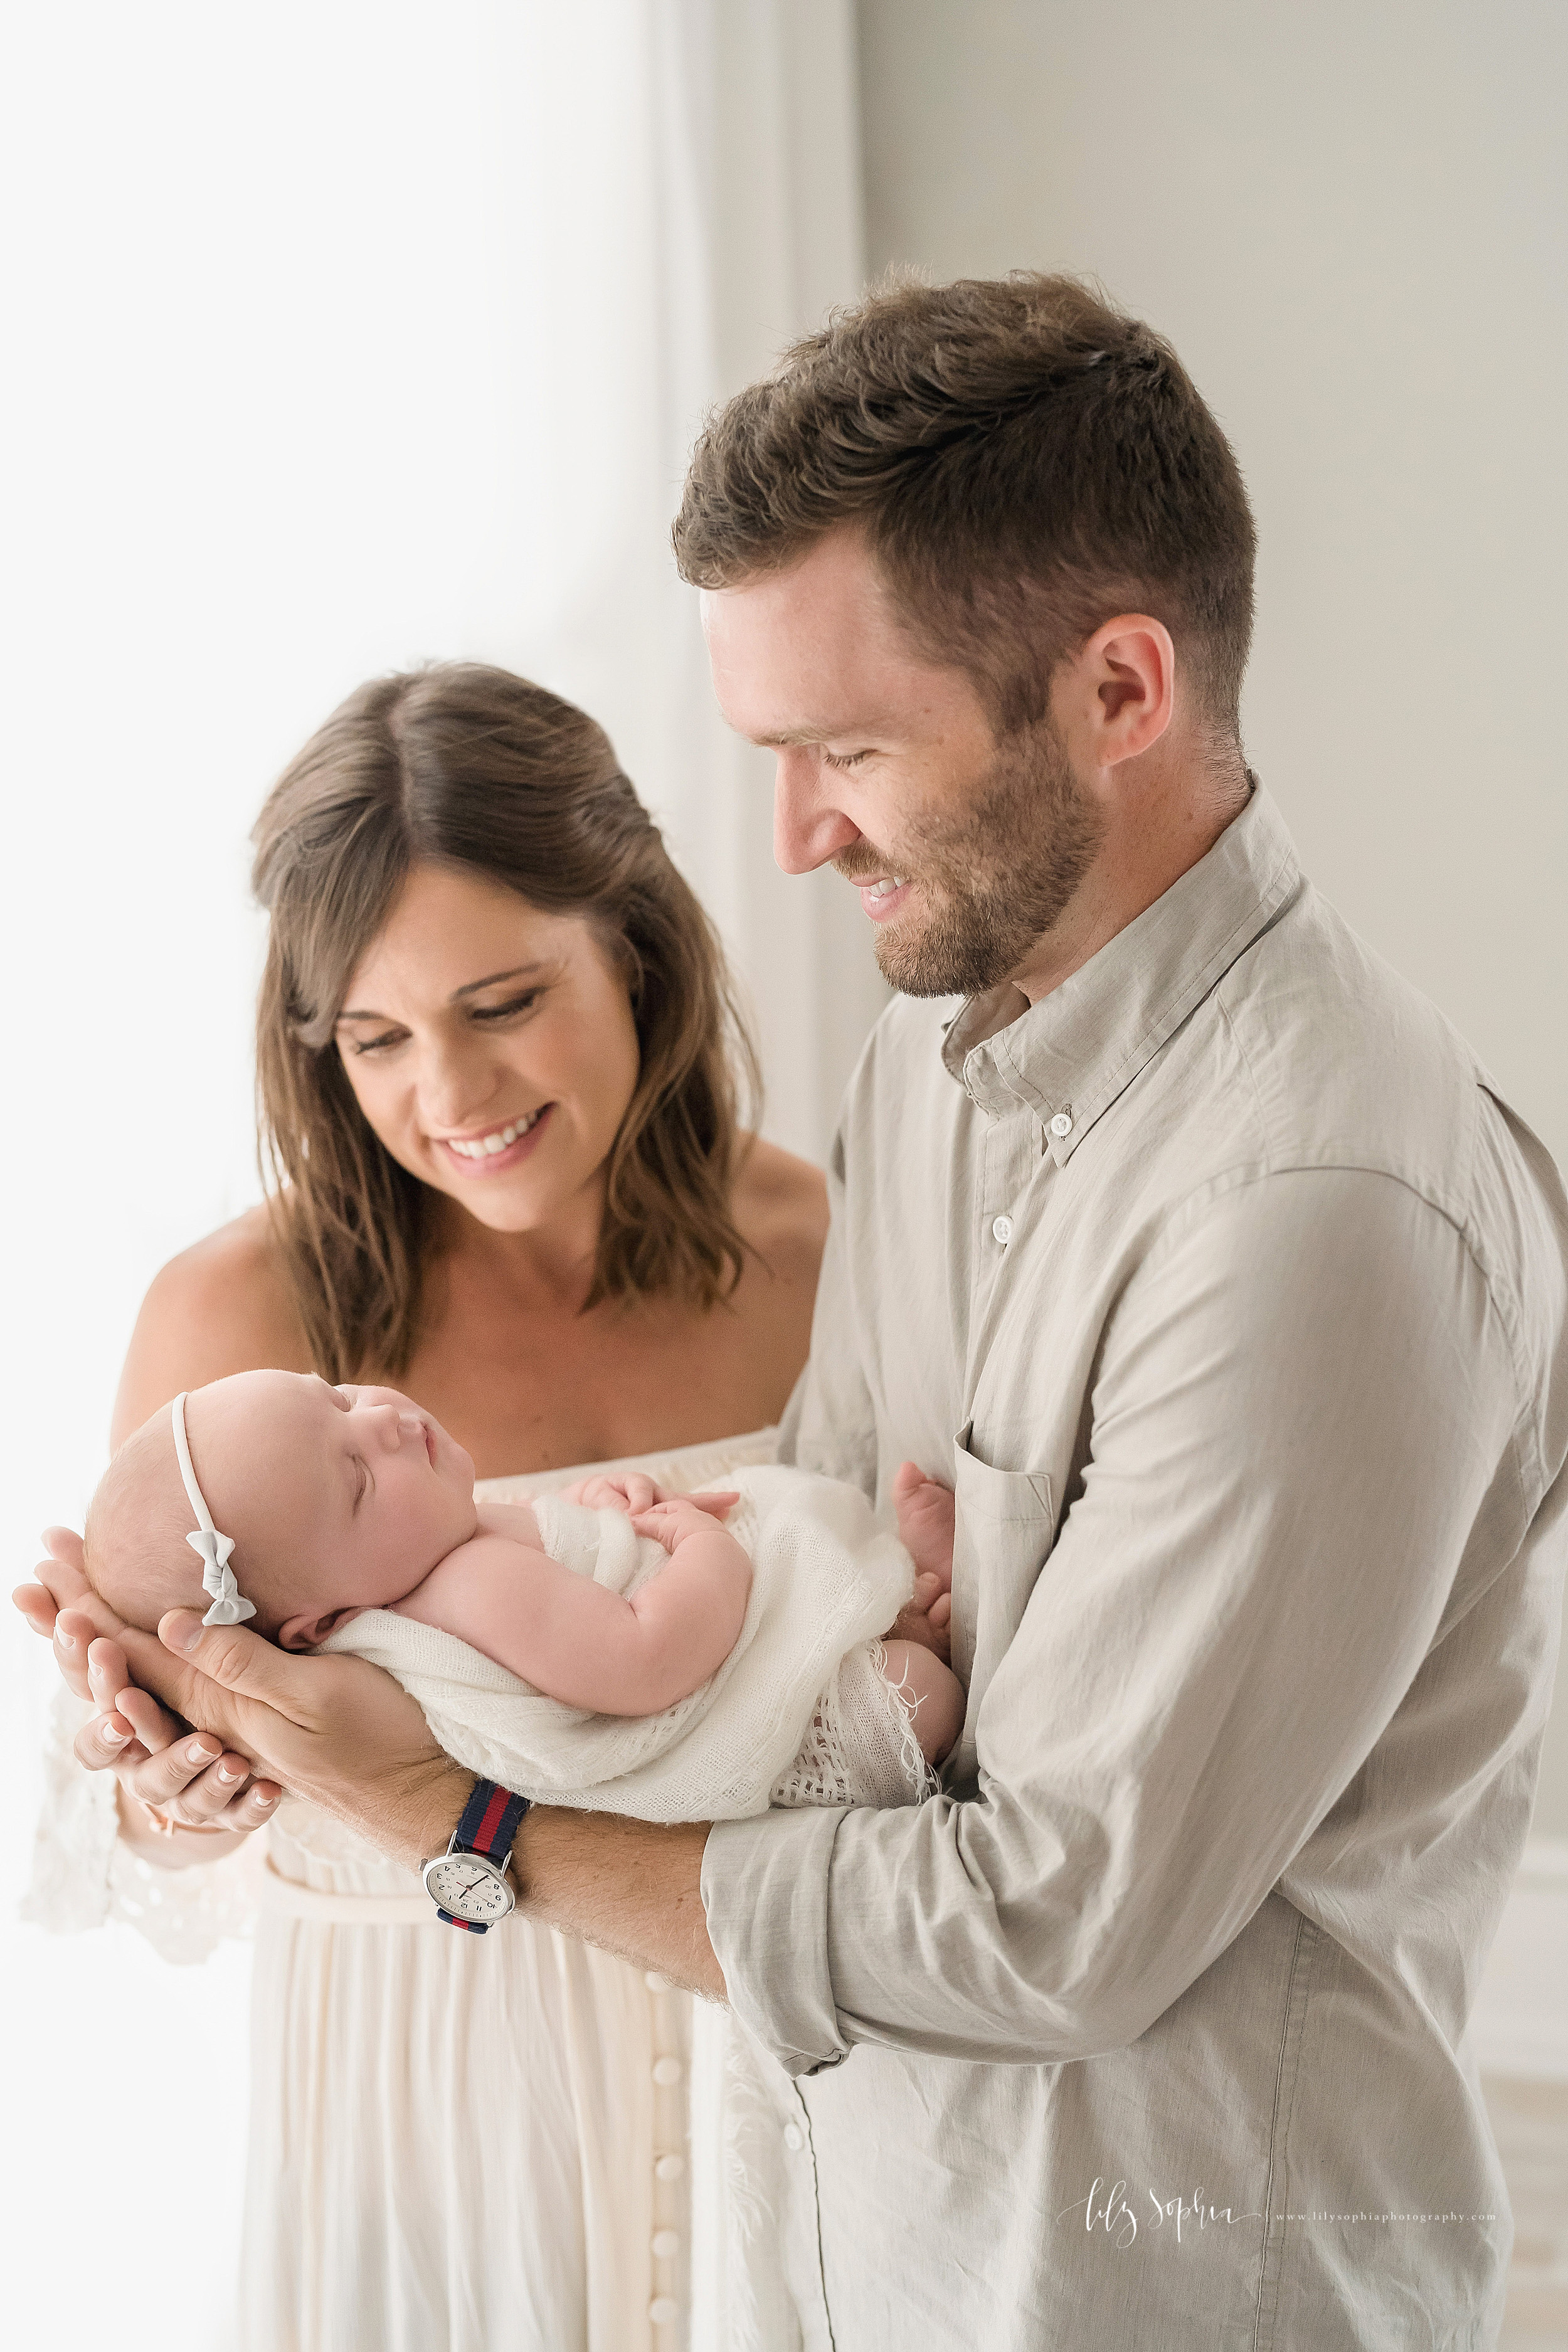 Family photo of three as dad holds his sleeping newborn daughter in his hands and mom tenderly looks on taken in a natural light Atlanta studio.